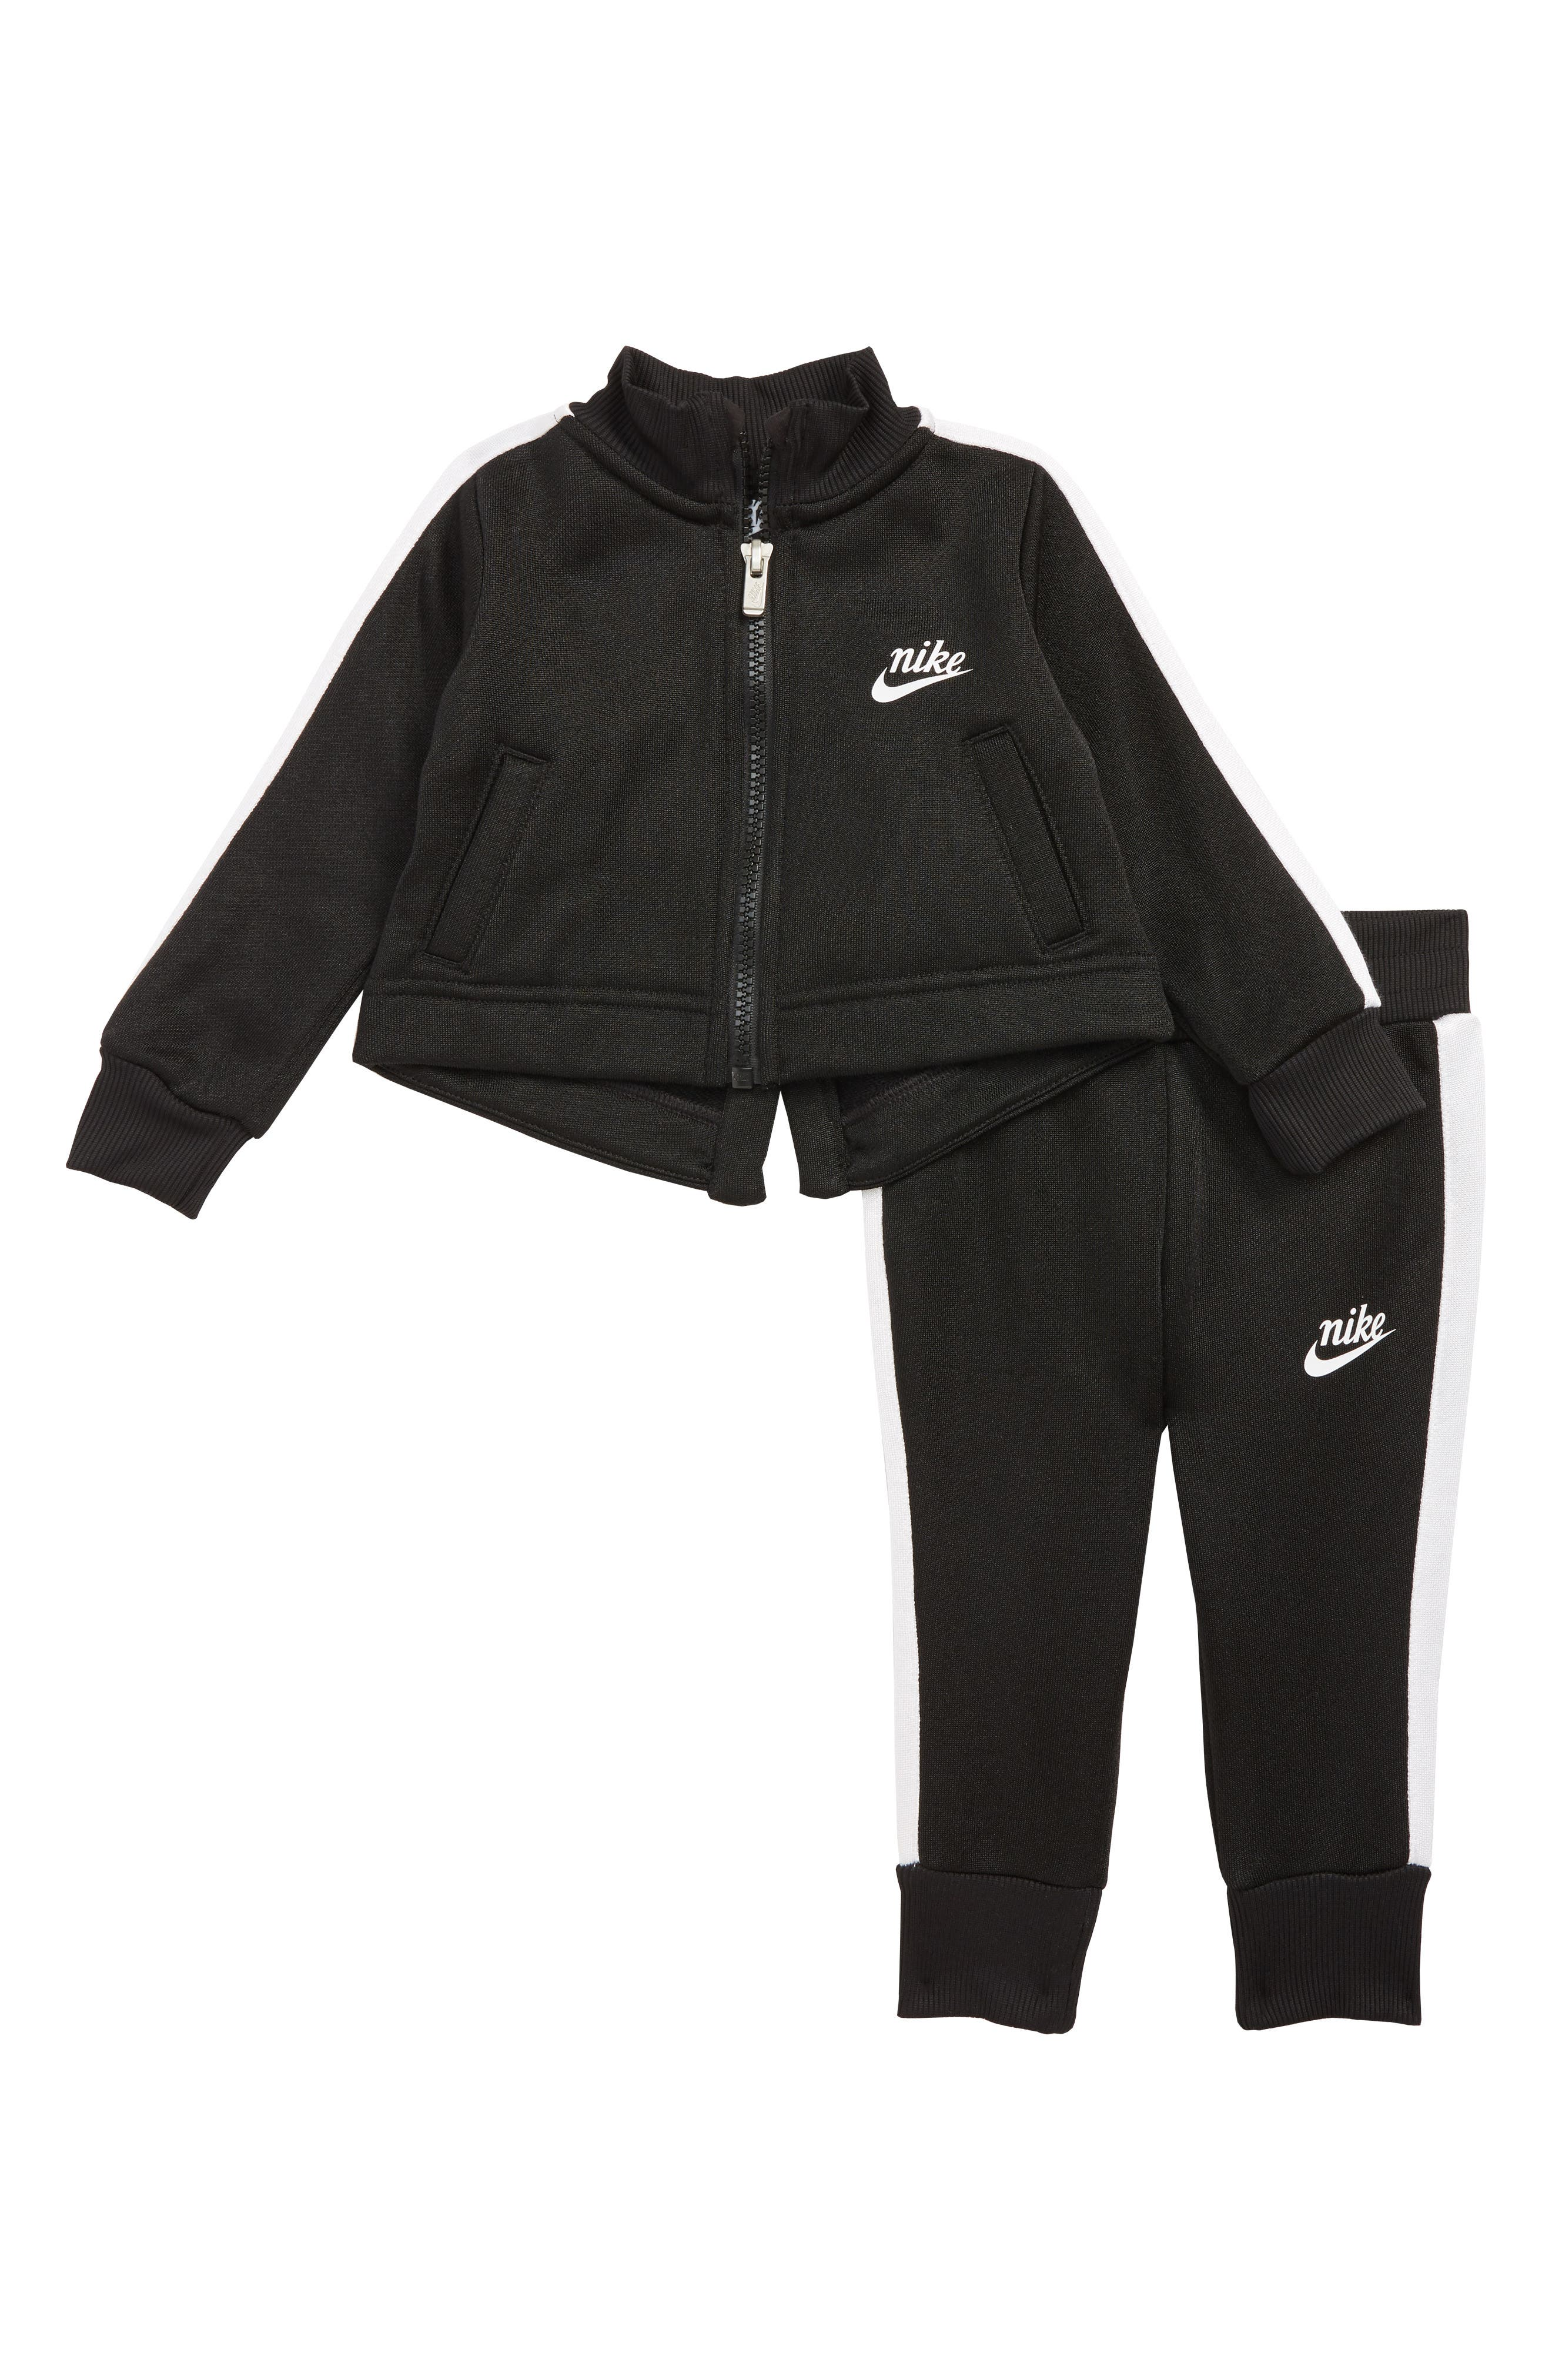 sale retailer 657a4 060b2 Nike Baby Clothing   Nordstrom